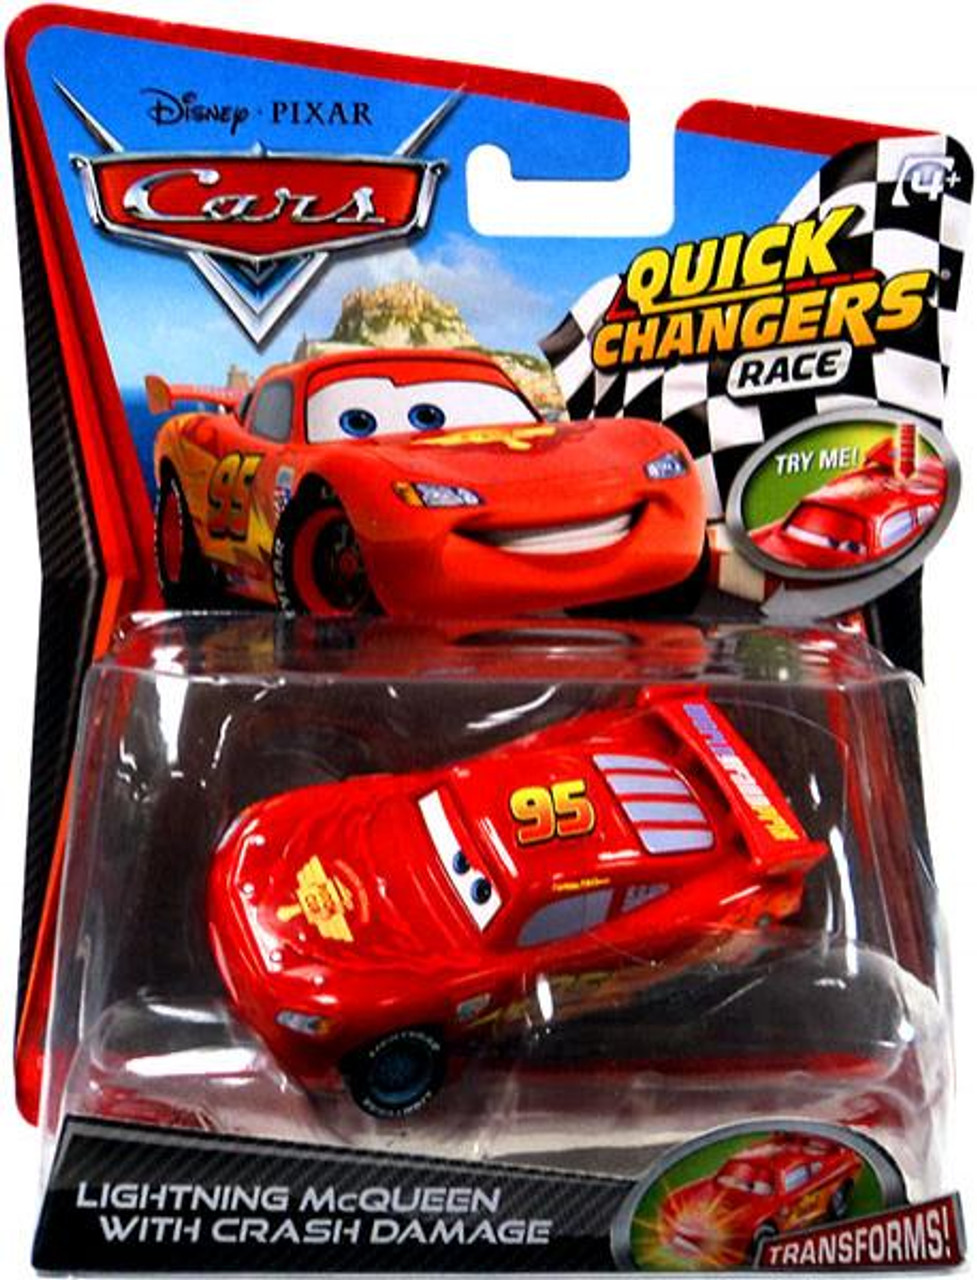 Disney Cars Cars 2 Quick Changers Race Lightning McQueen with Crash Damage Diecast Car